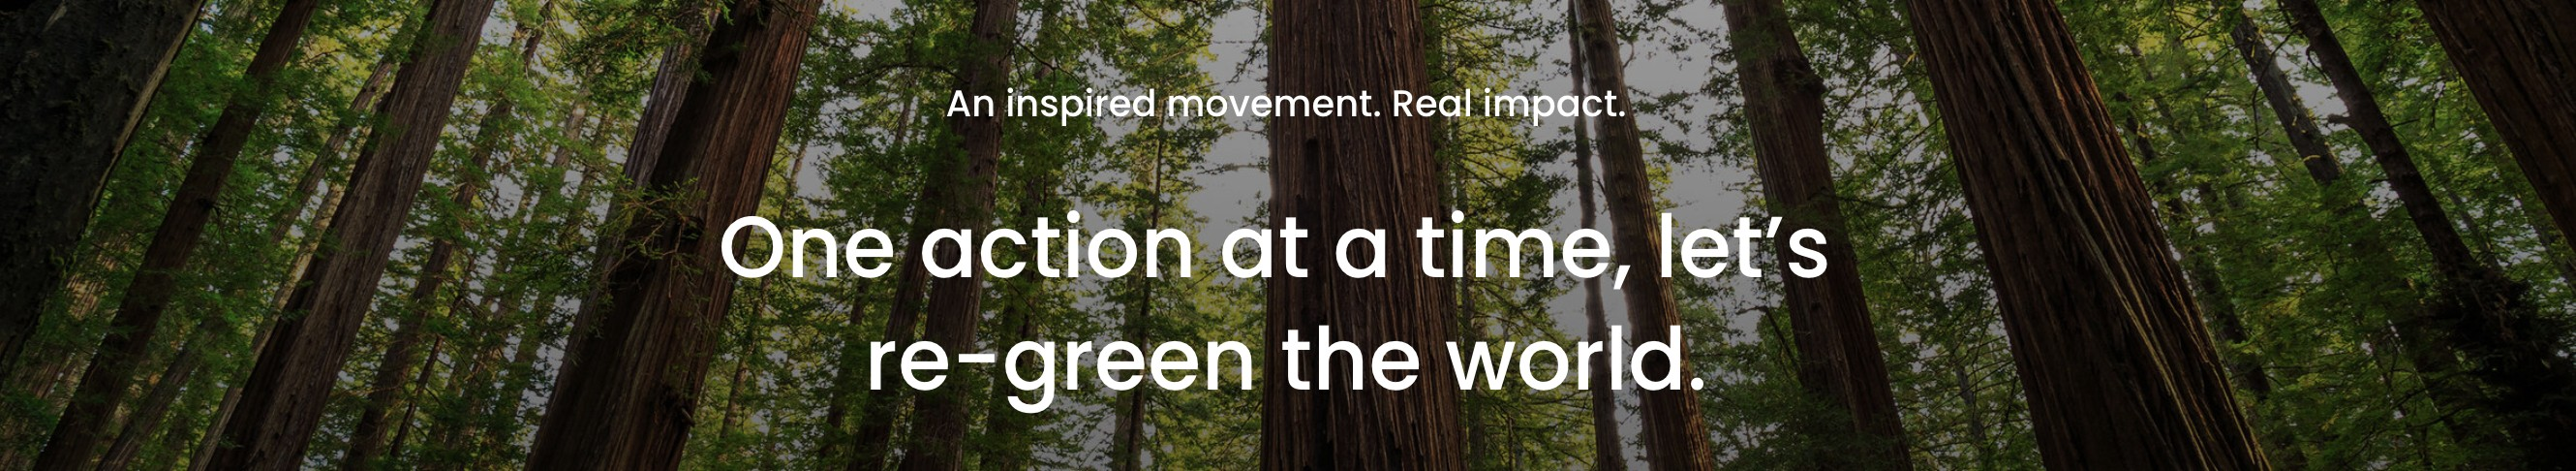 one action at a time, let's re-green the world.